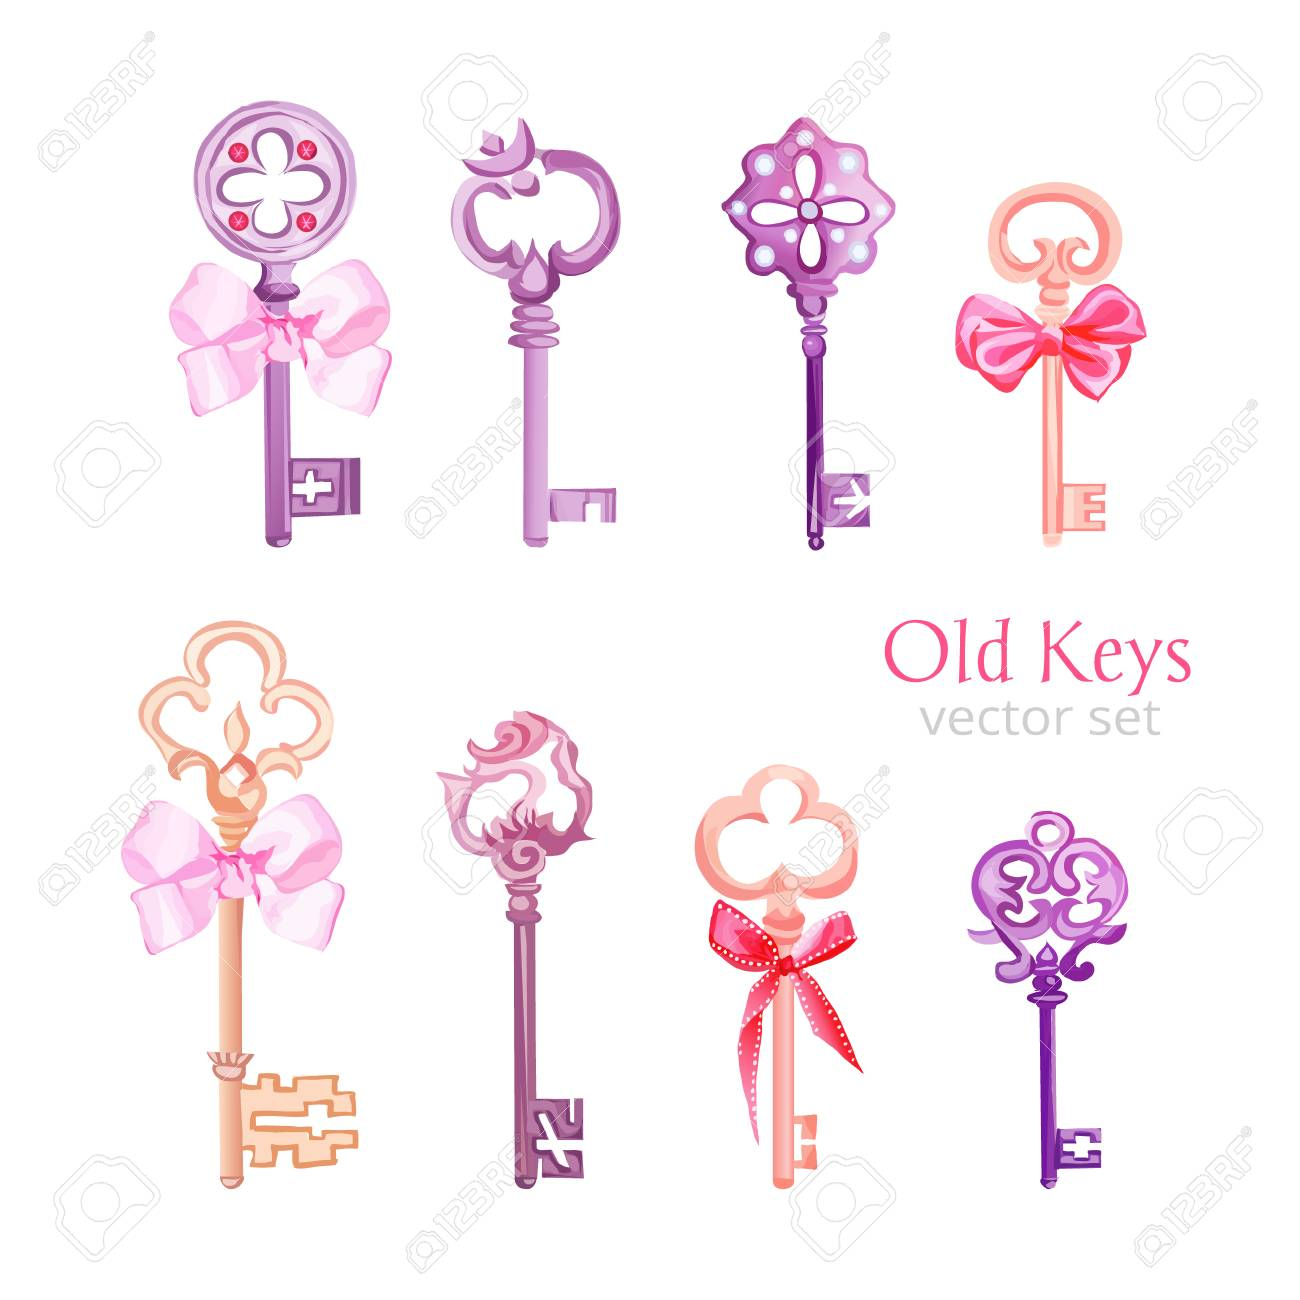 Monk with a set of keys clipart clipart freeuse Free Key Clipart gothic, Download Free Clip Art on Owips.com clipart freeuse